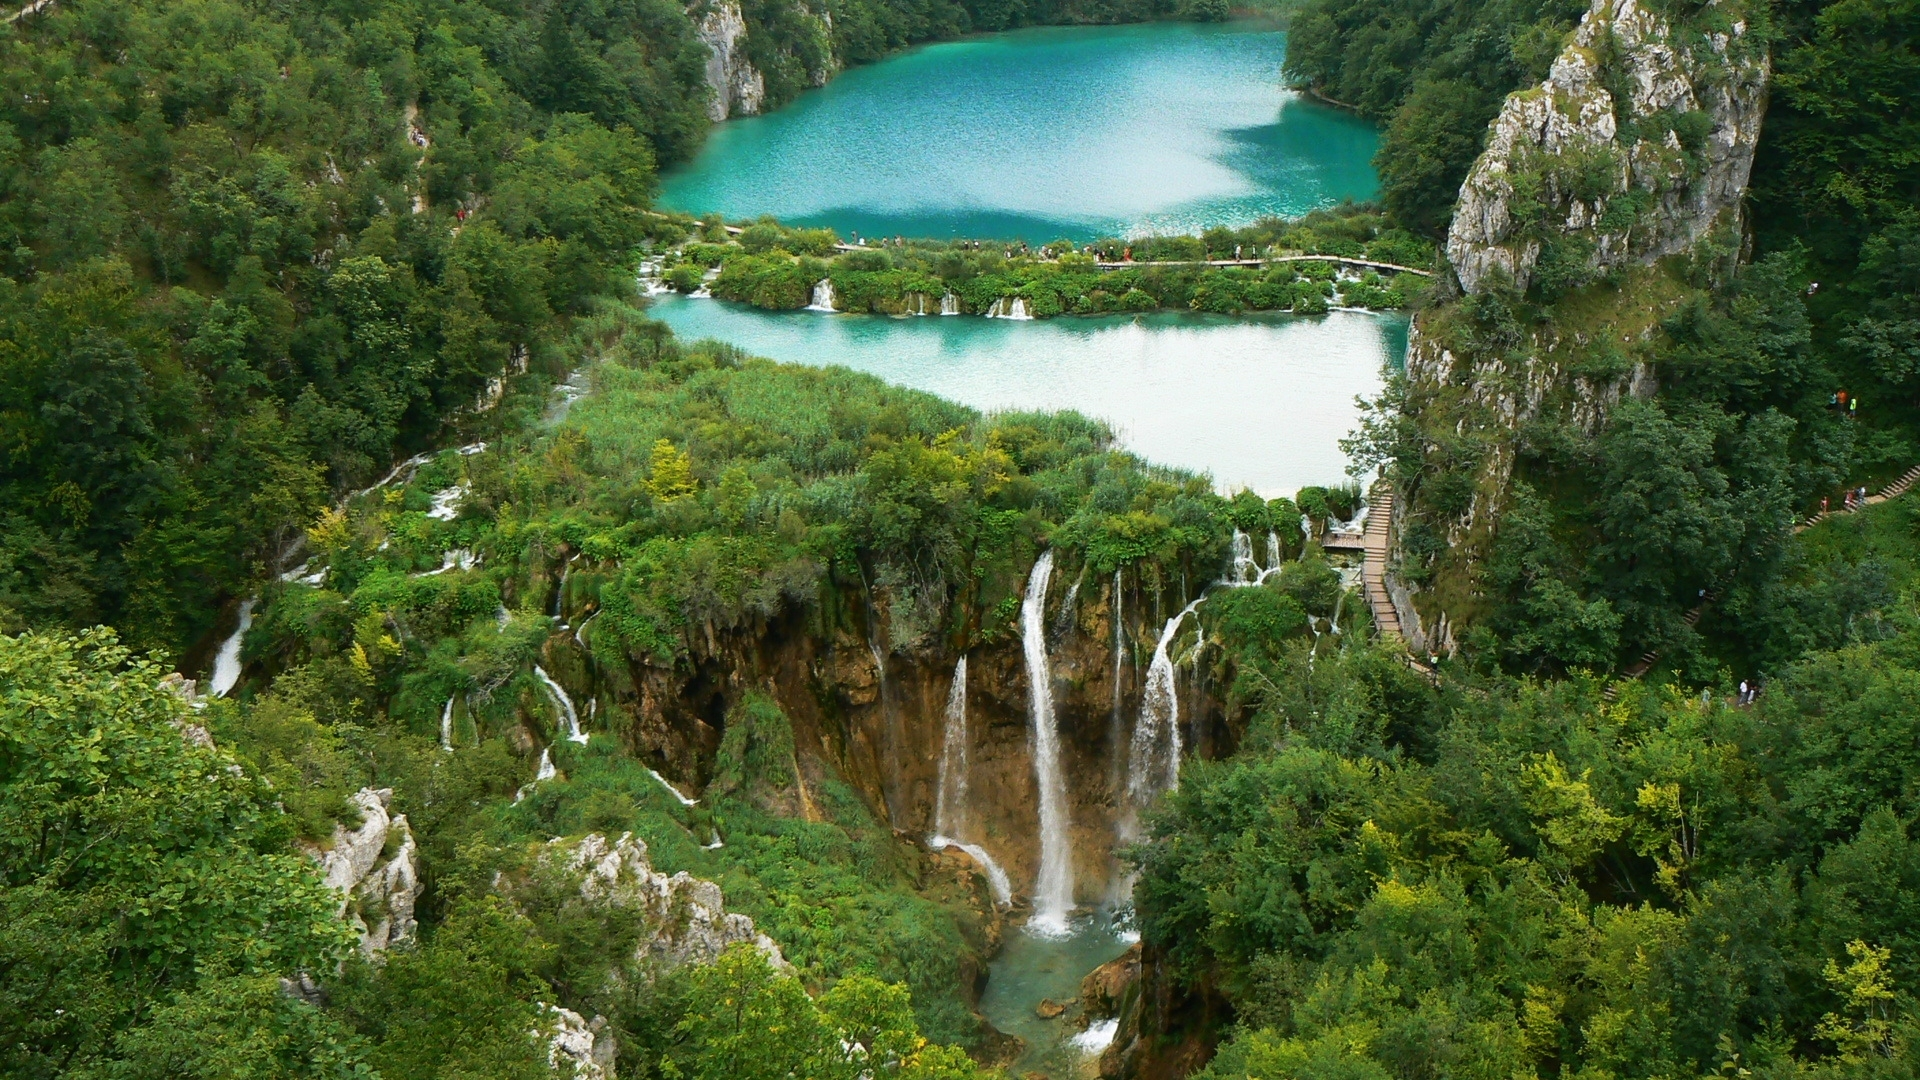 42816 download wallpaper Landscape, Nature, Waterfalls screensavers and pictures for free